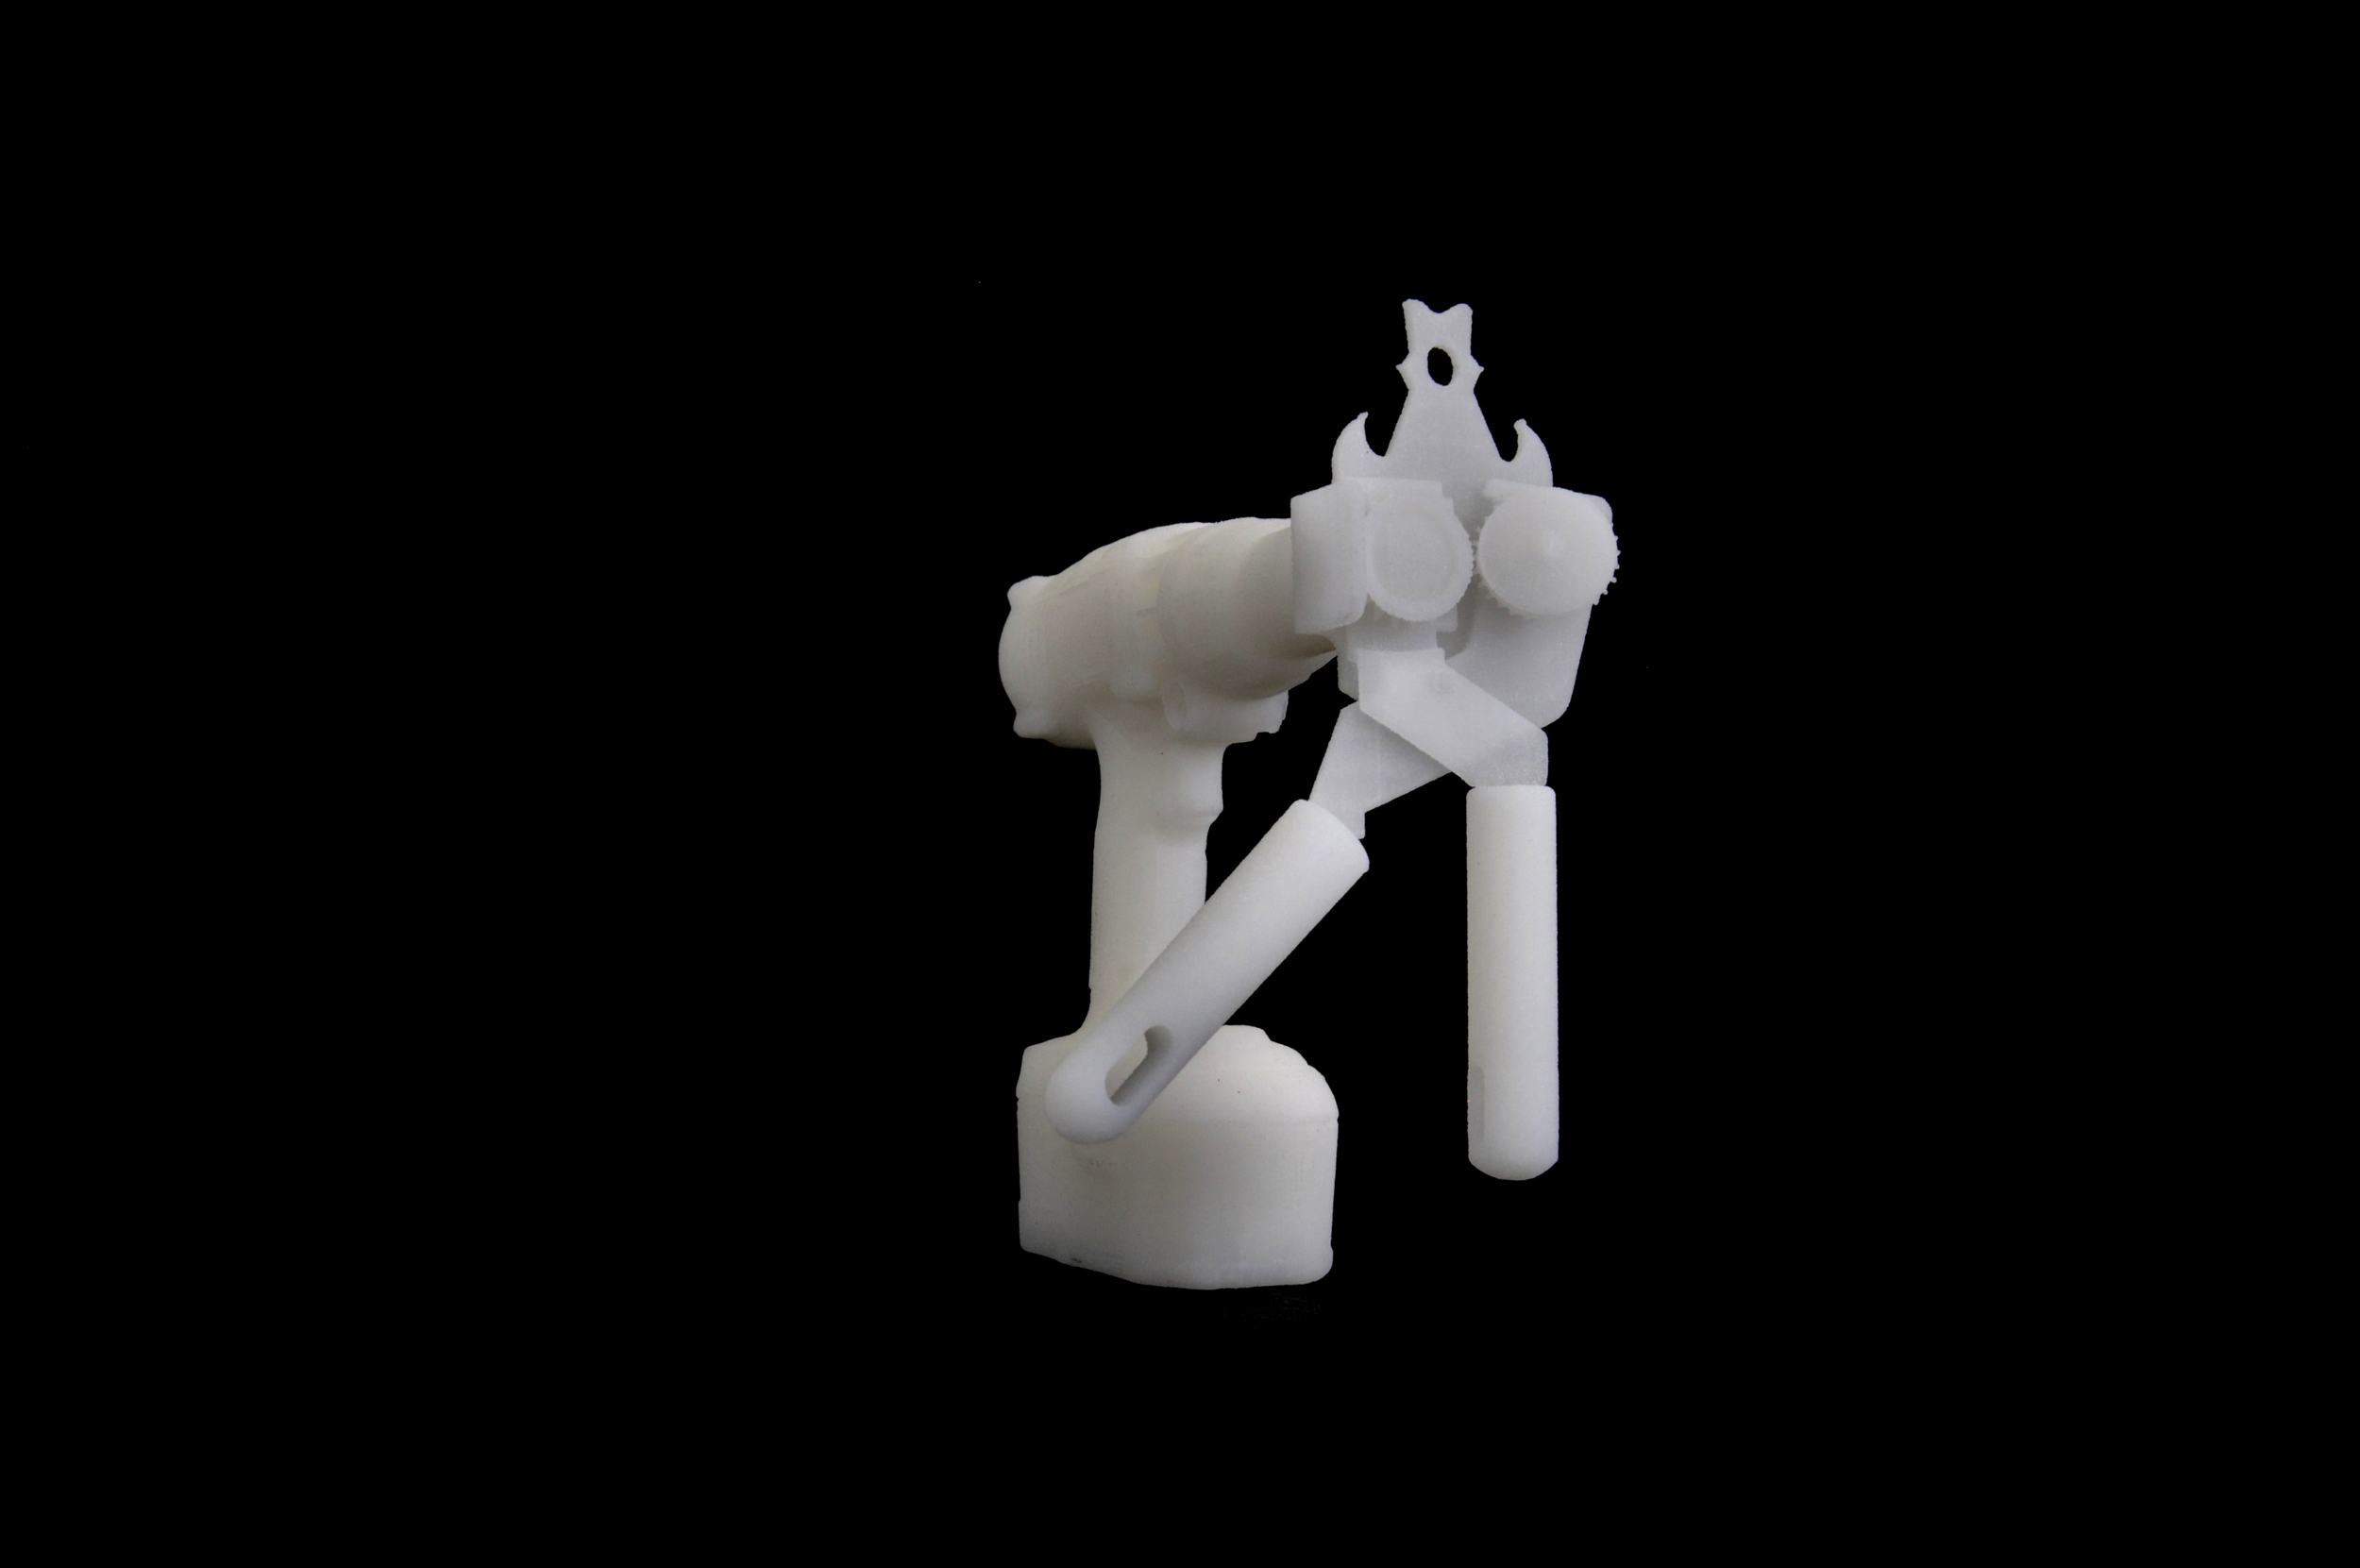 Formal metonymy, 2017, A projection of an animated 3D printed object - a can opener connected to a battery drill, 12 x 6 x 11 cm, Courtesy of the artist and Gypsum Gallery.